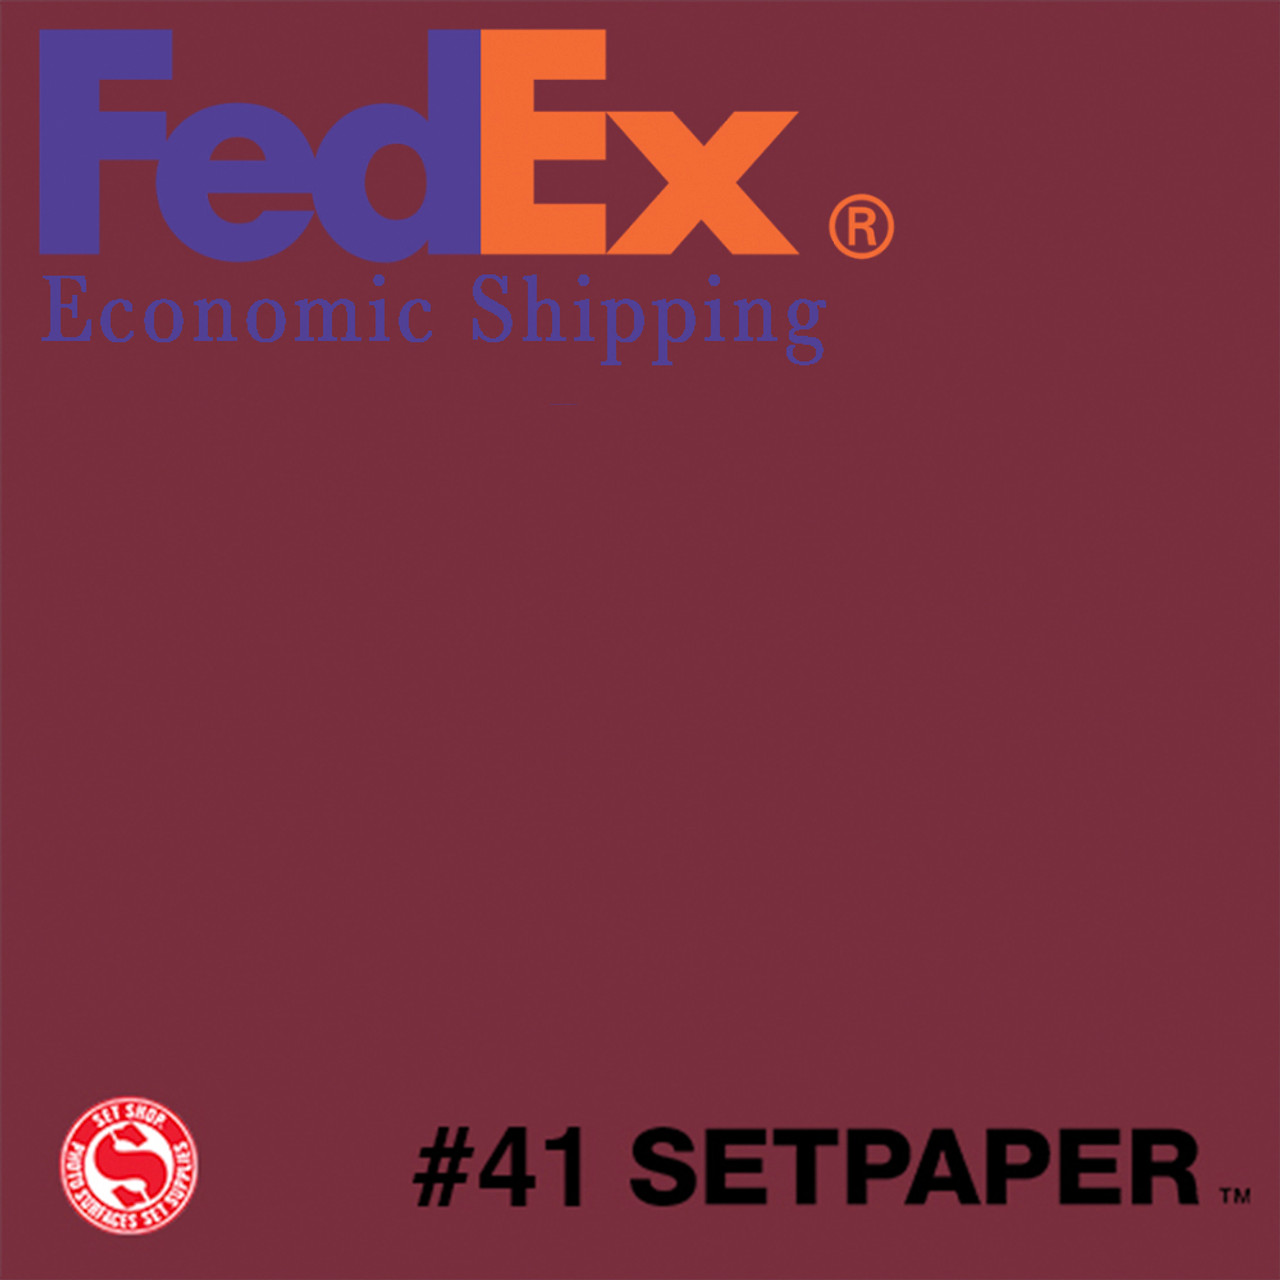 "(ECONOMIC SHIPPING) SETPAPER - RED 48"" x 36' (1.3 x 11m)"